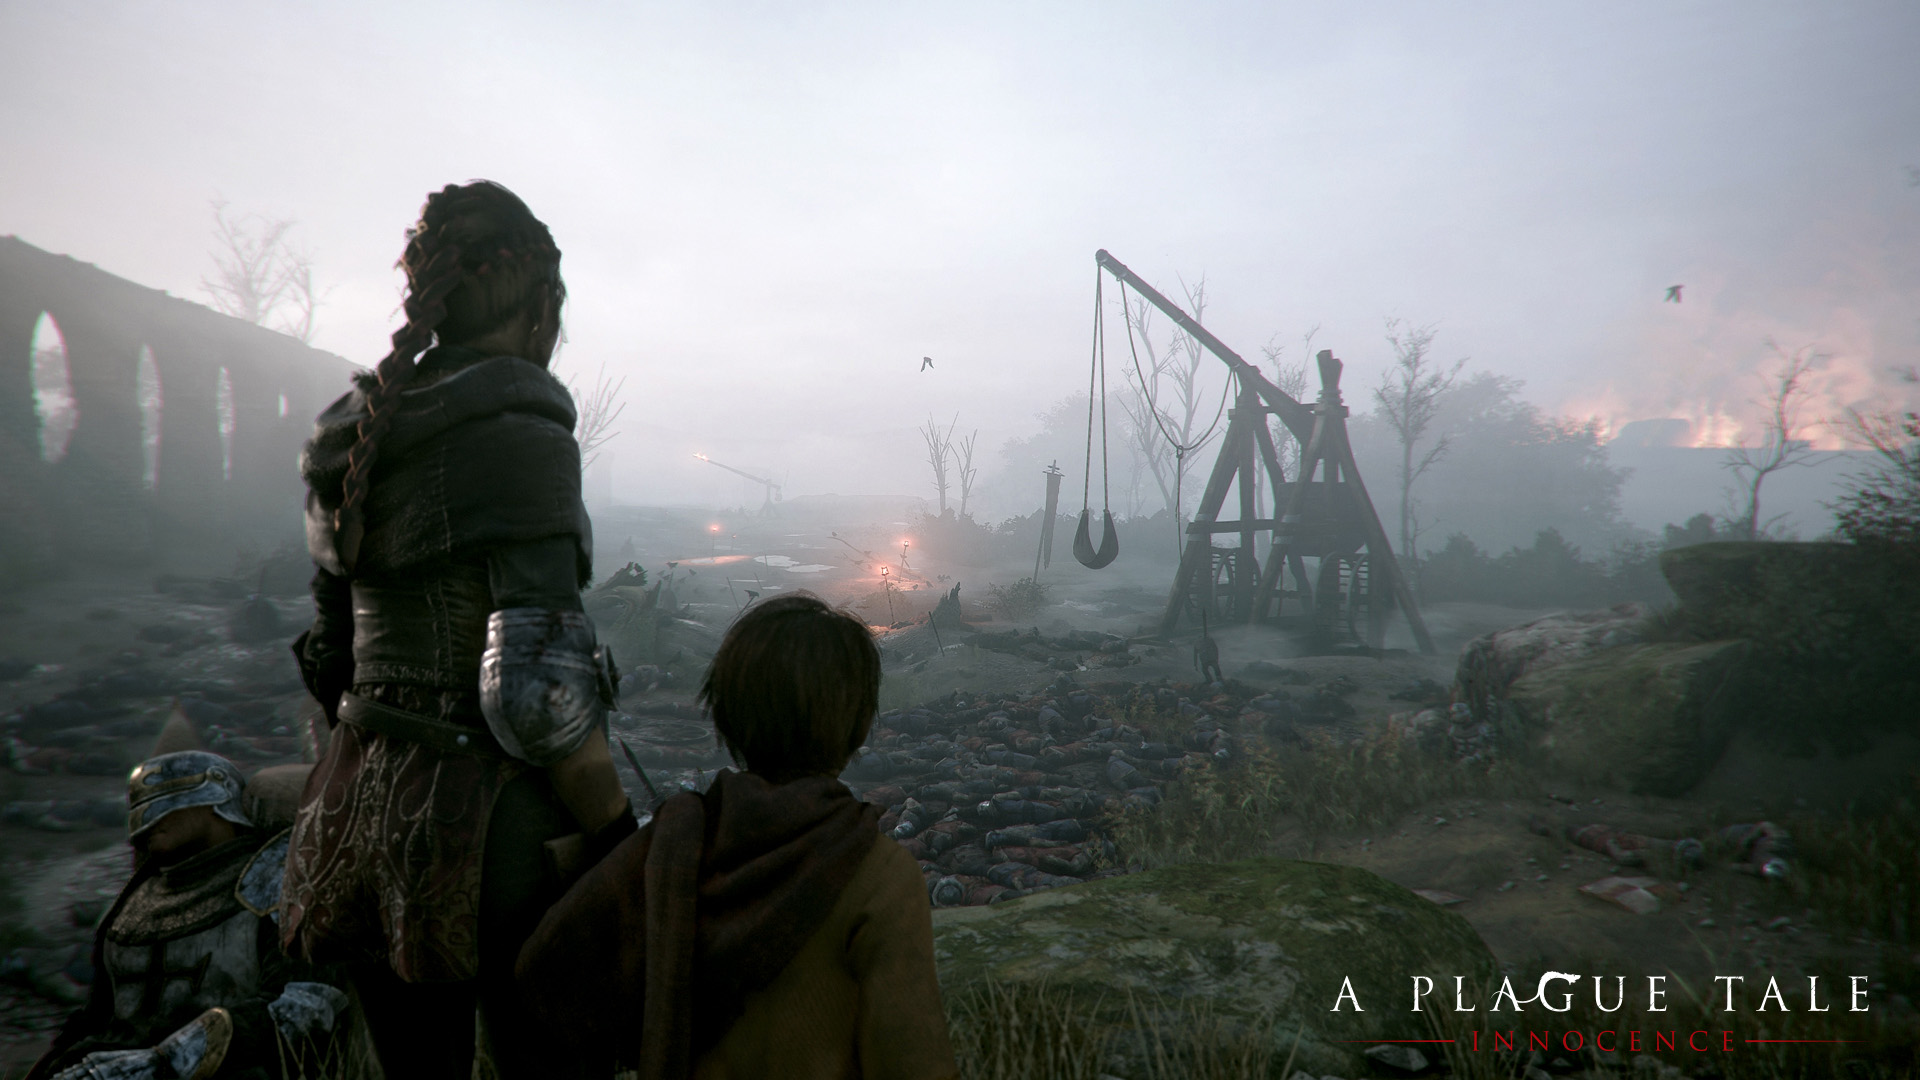 A_Plague_Tale-Innocence-08.jpg